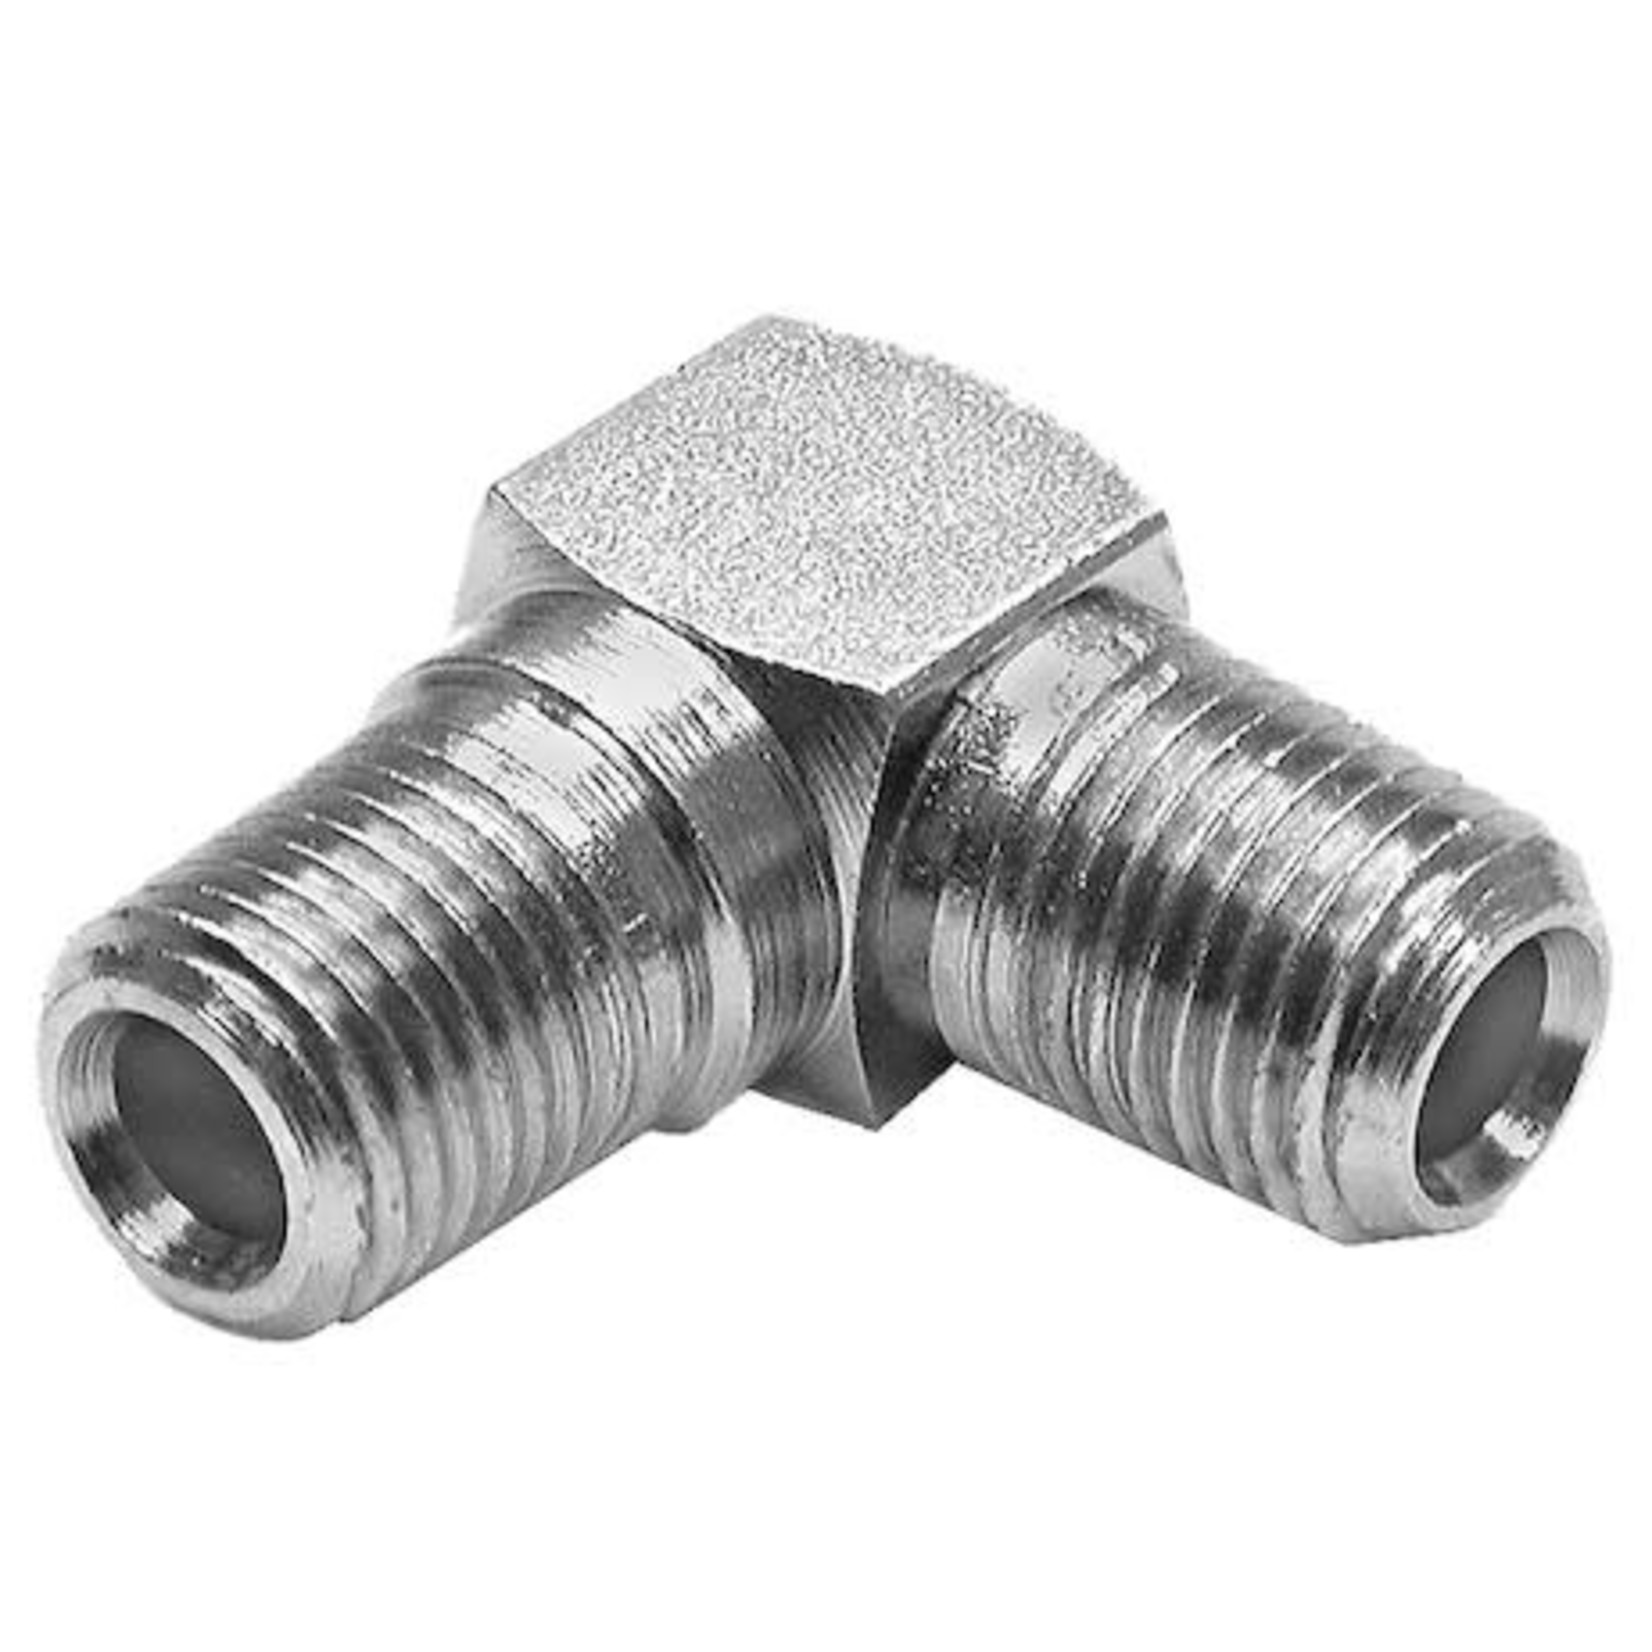 SAM SAM 1/4 Inch Male Elbow Tall (E-60)-Replaces Meyer #21857